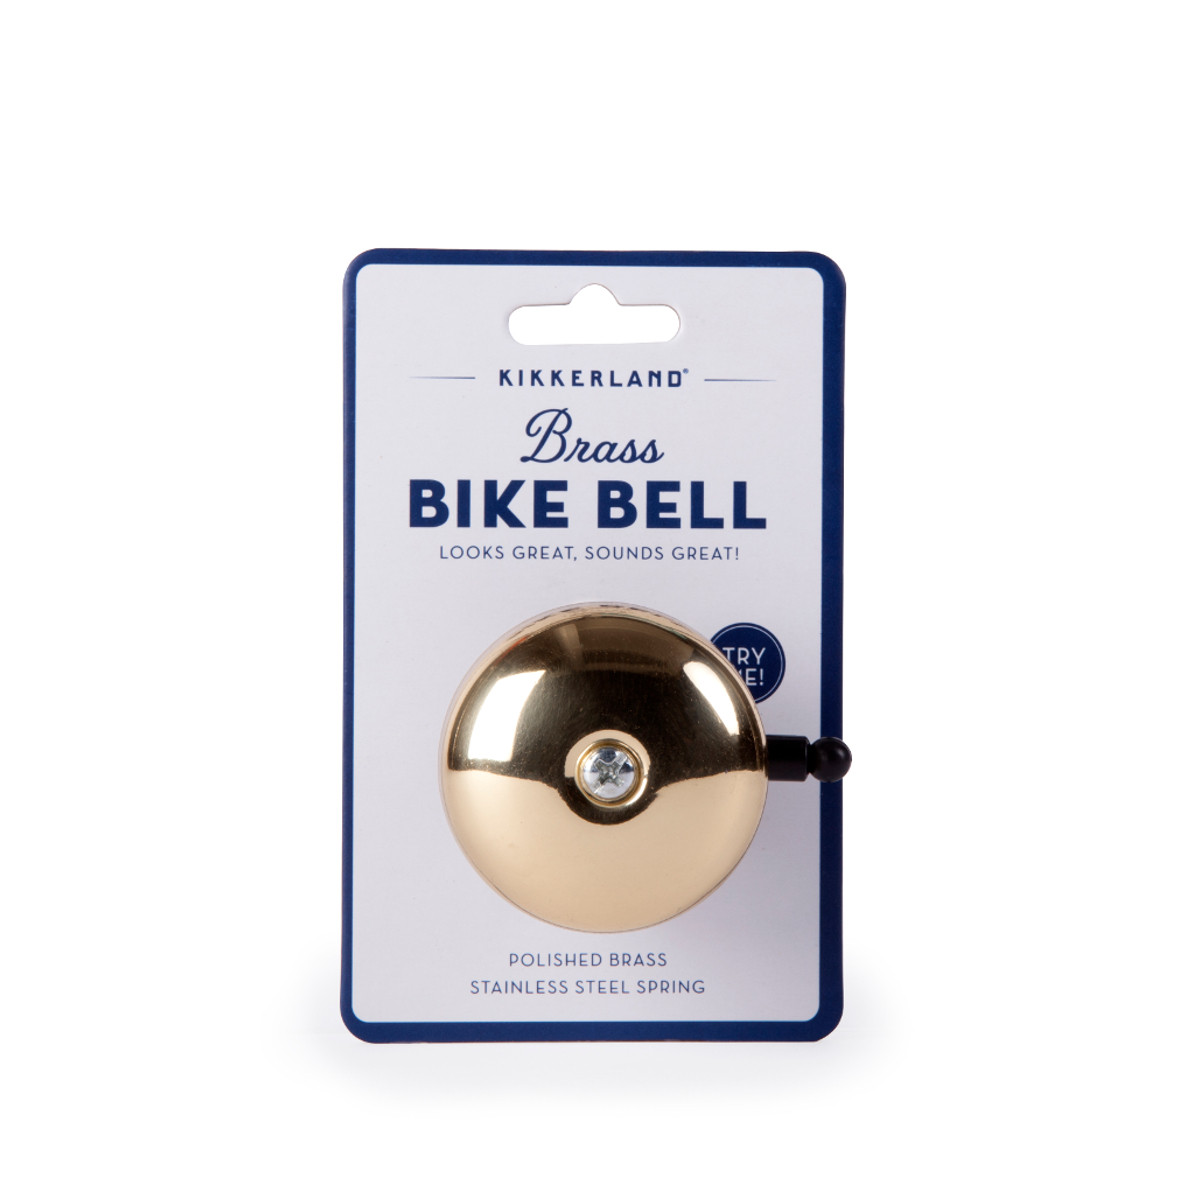 Brass Bike Bell Large - Verpackung